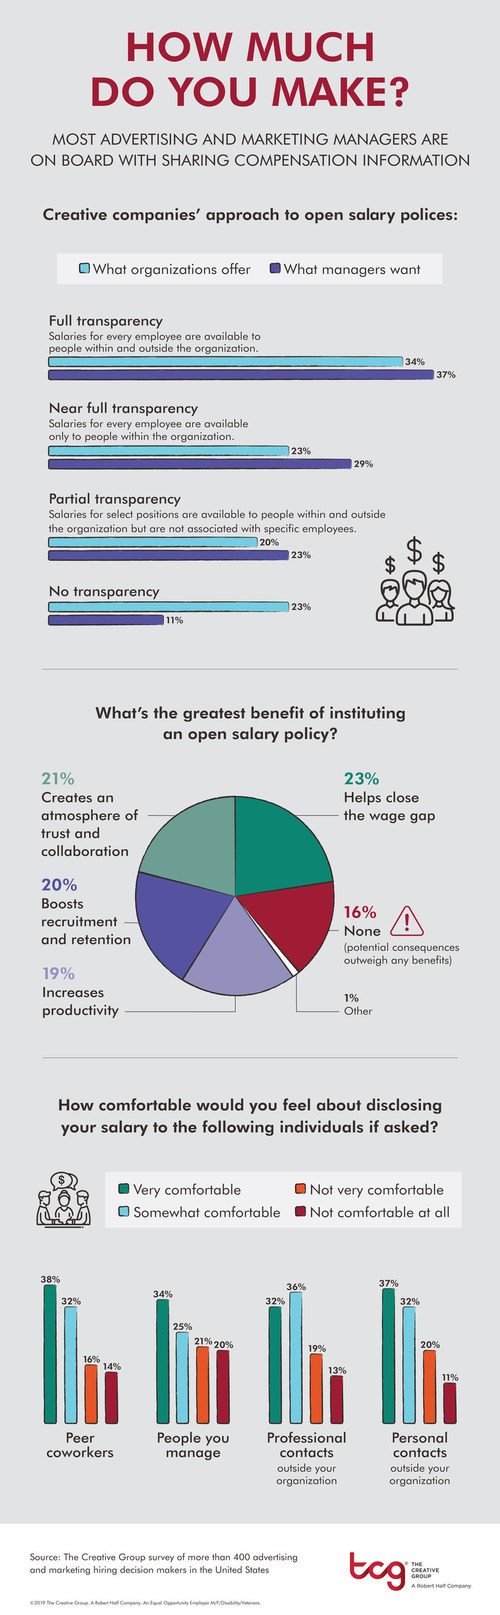 Research from The Creative Group shows a majority of creative companies and managers are open about pay.